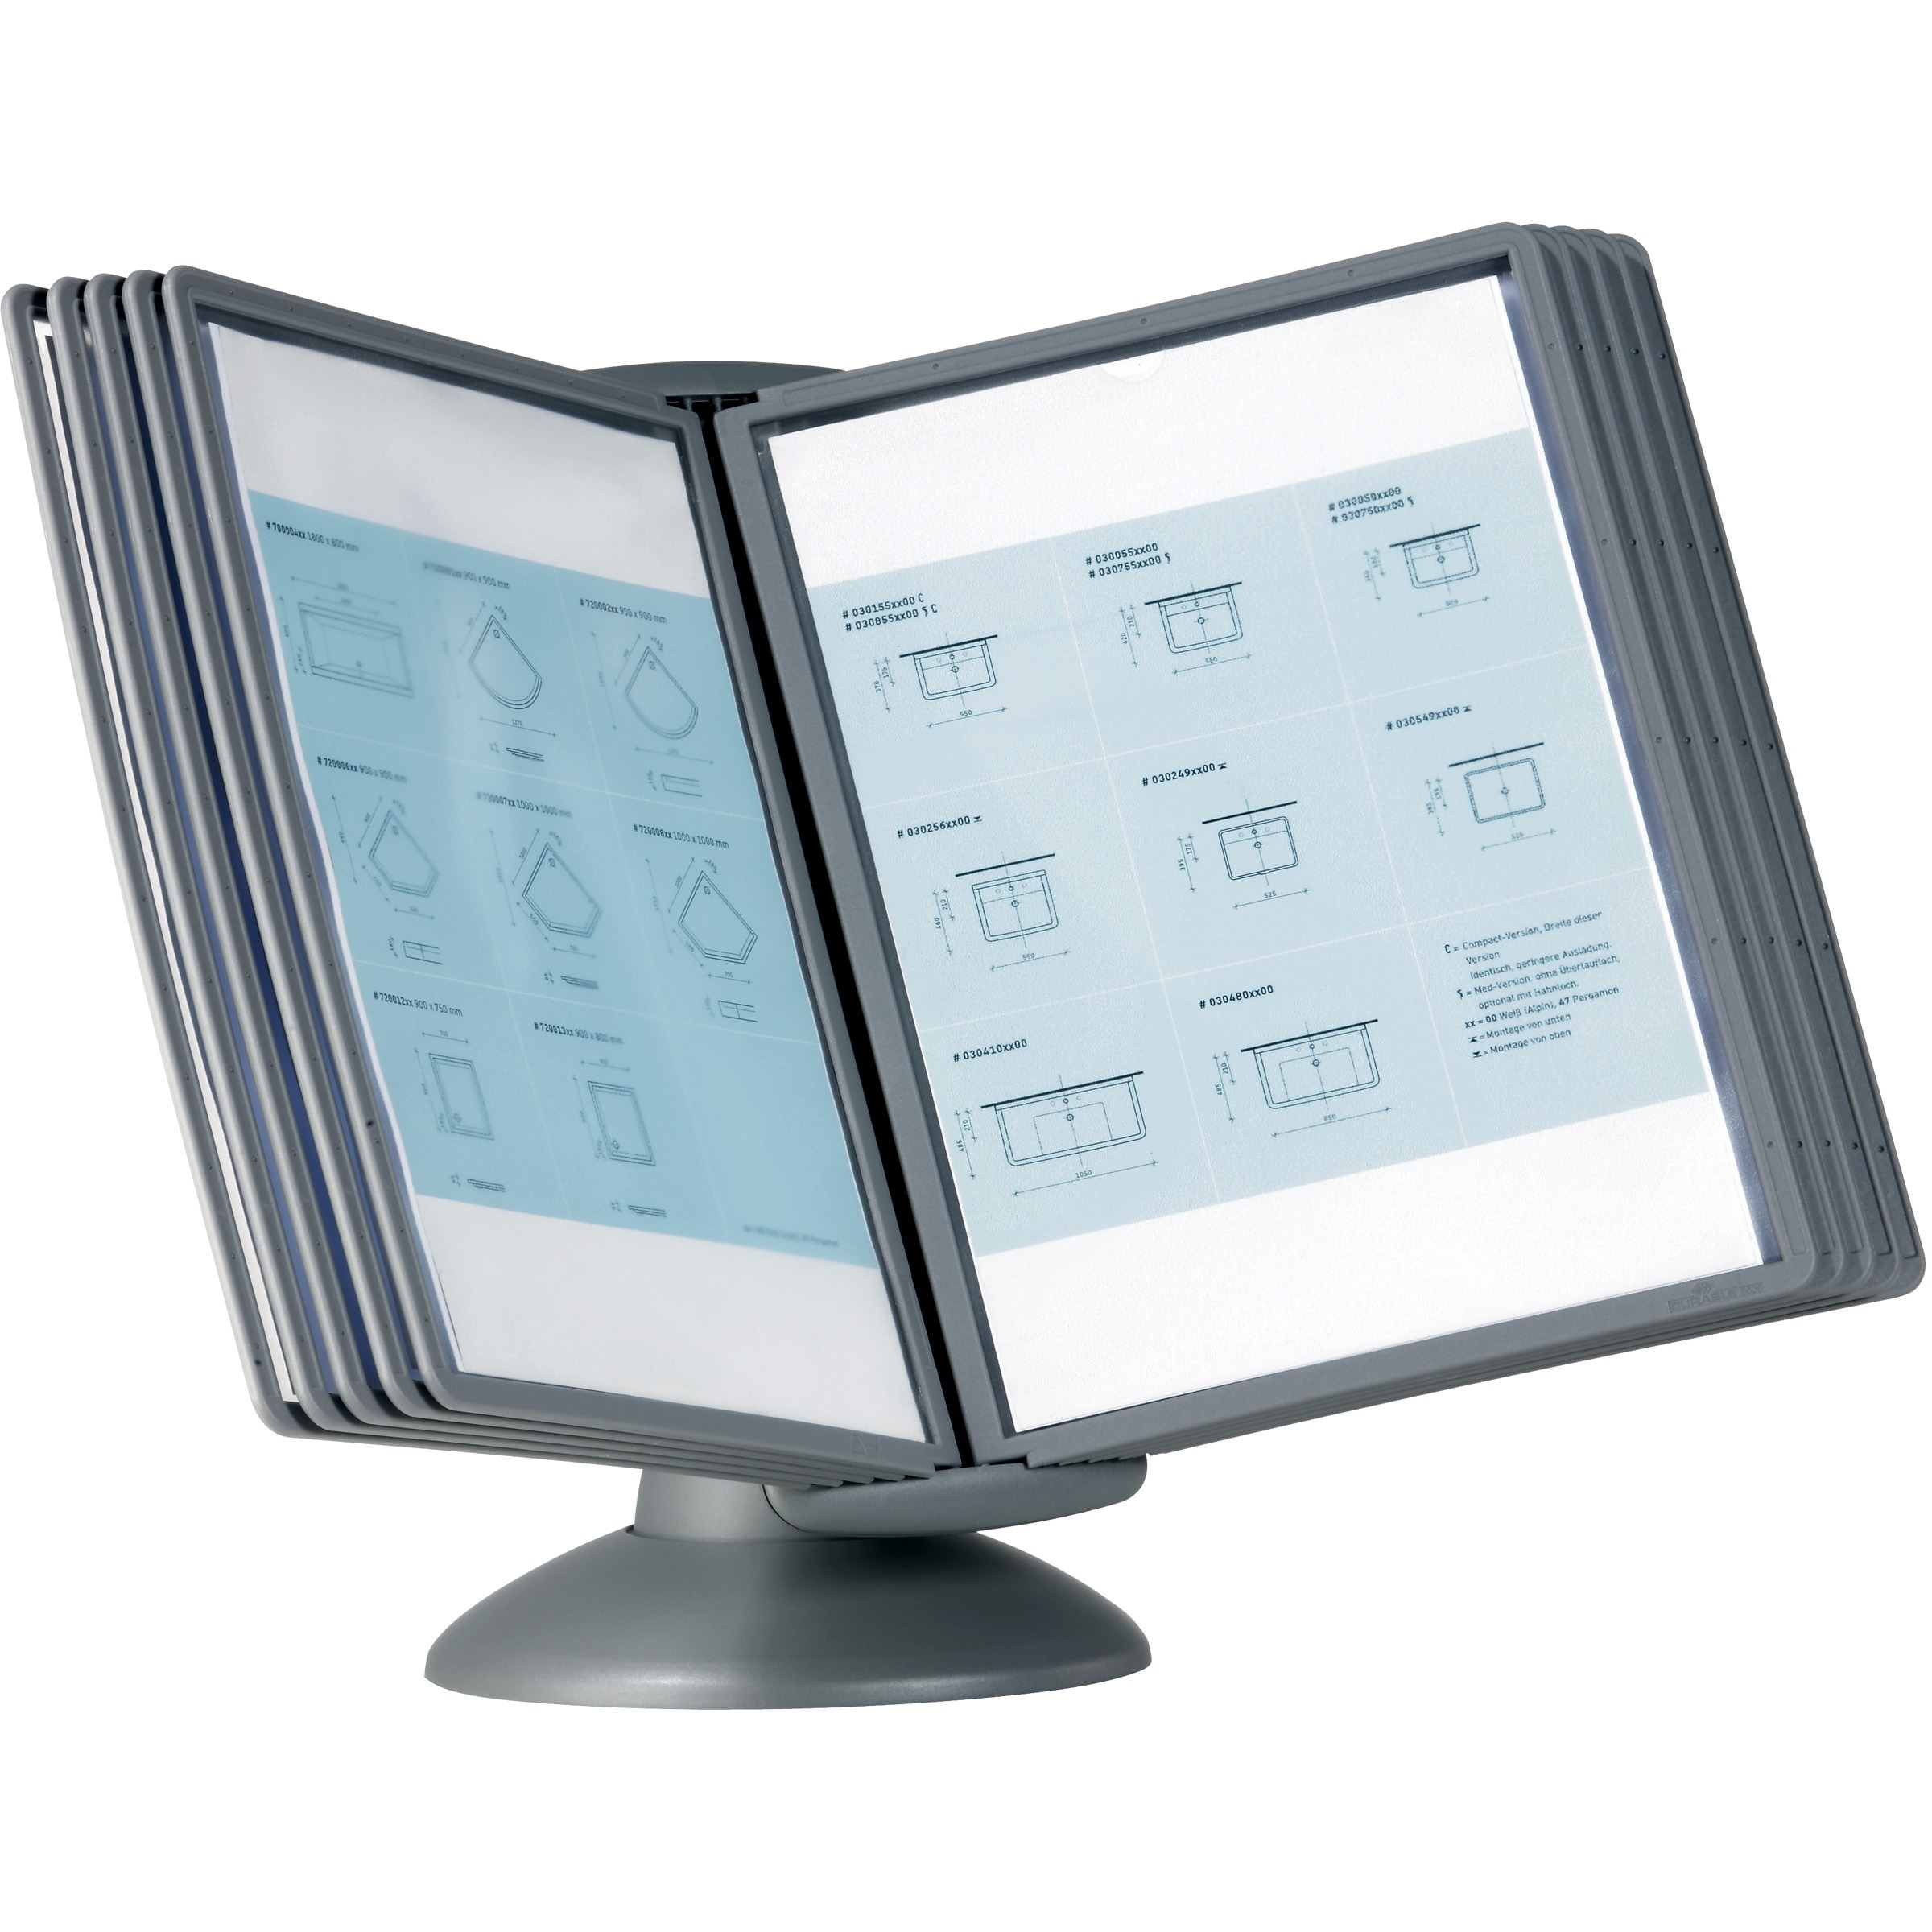 Dbl553937 Durable Sherpa Motion Desk Reference System